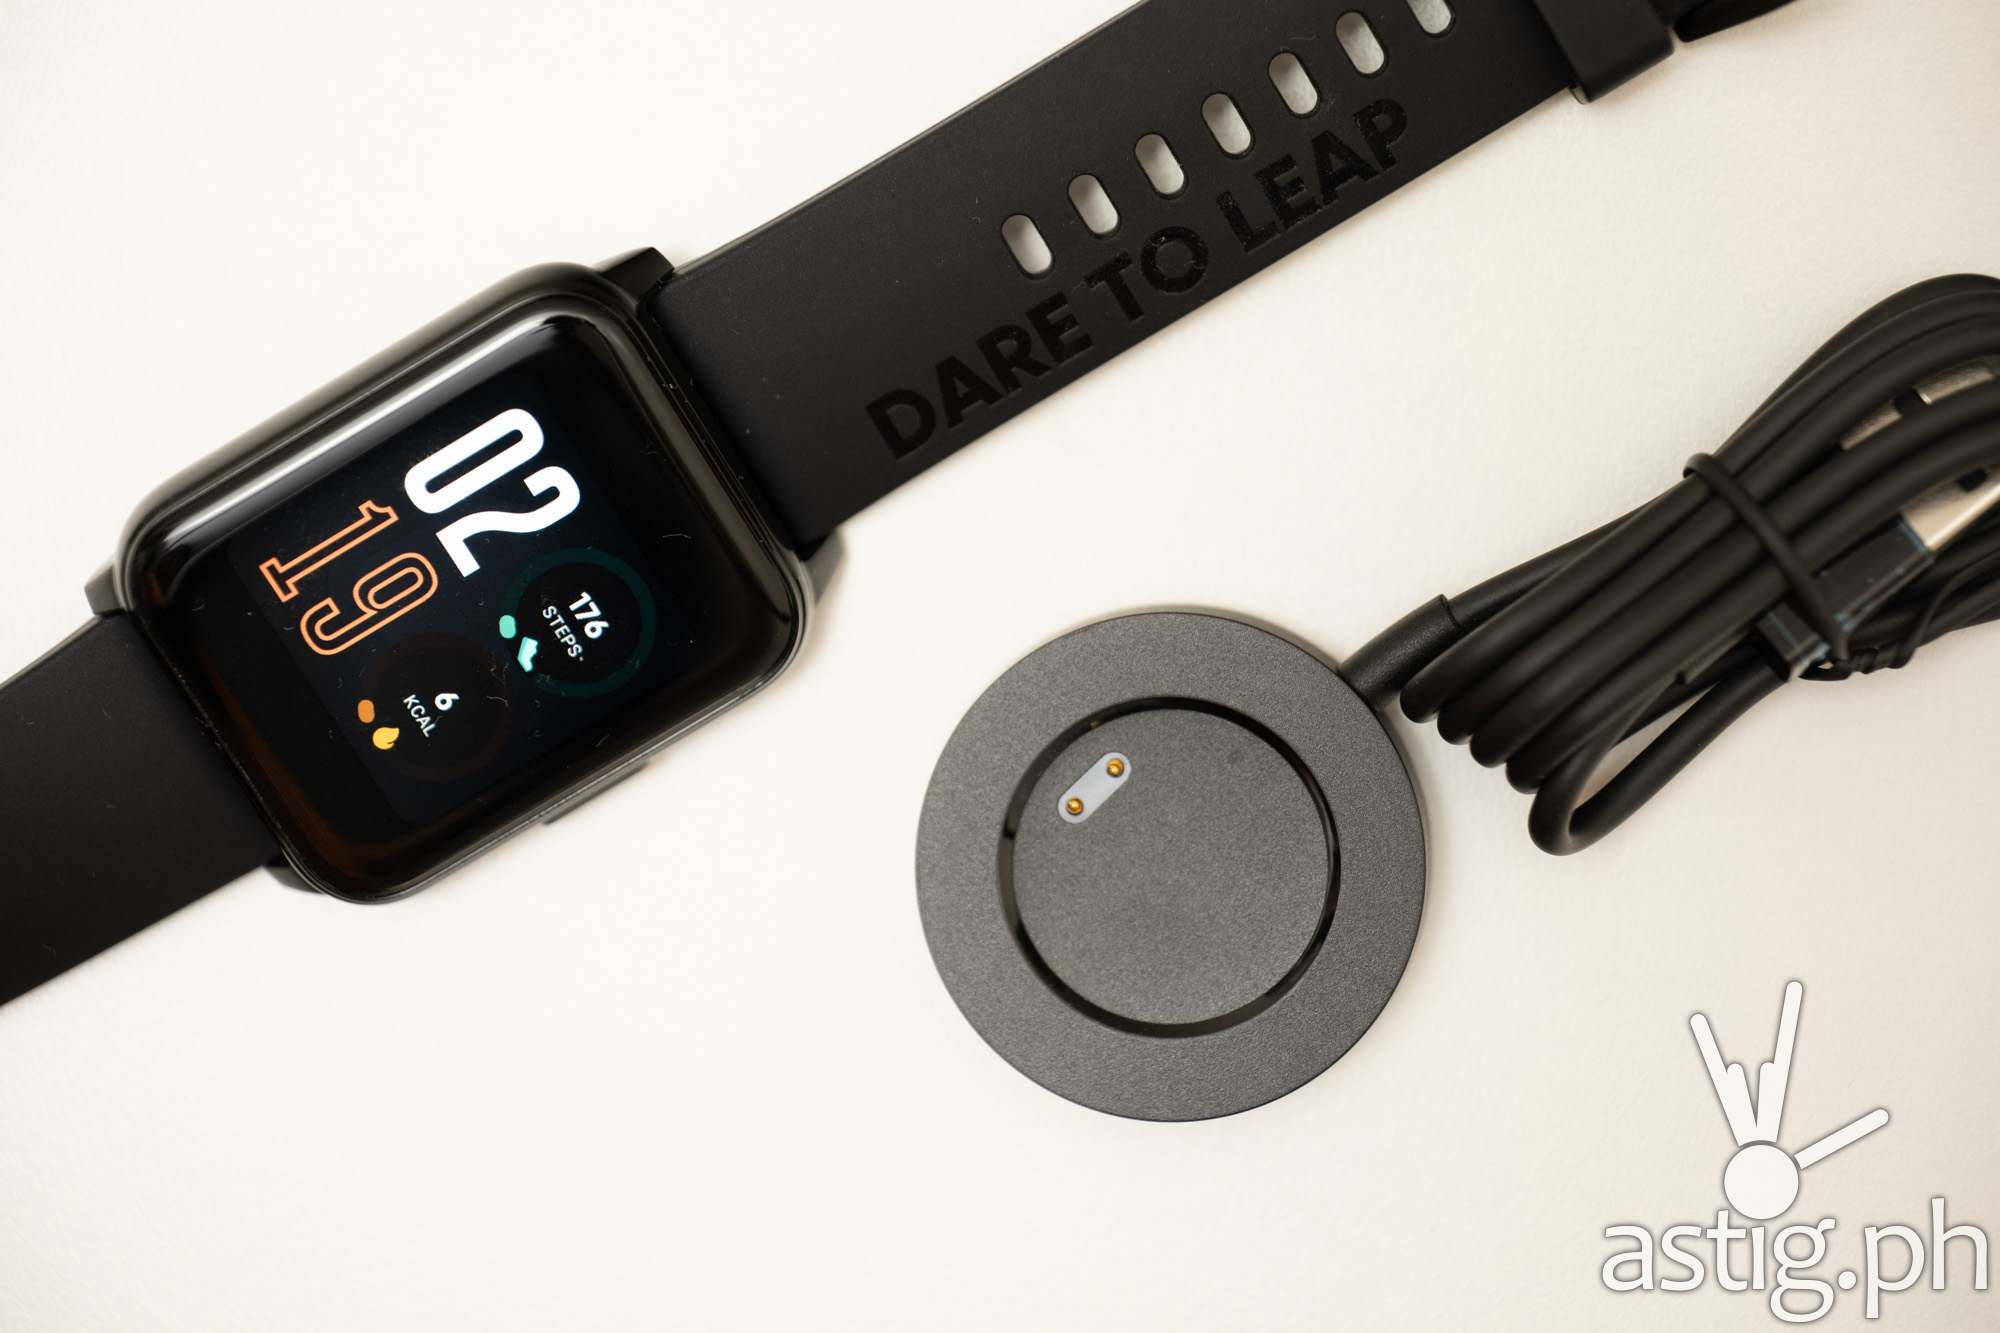 Watch with charger - realme Watch 2 (Philippines)